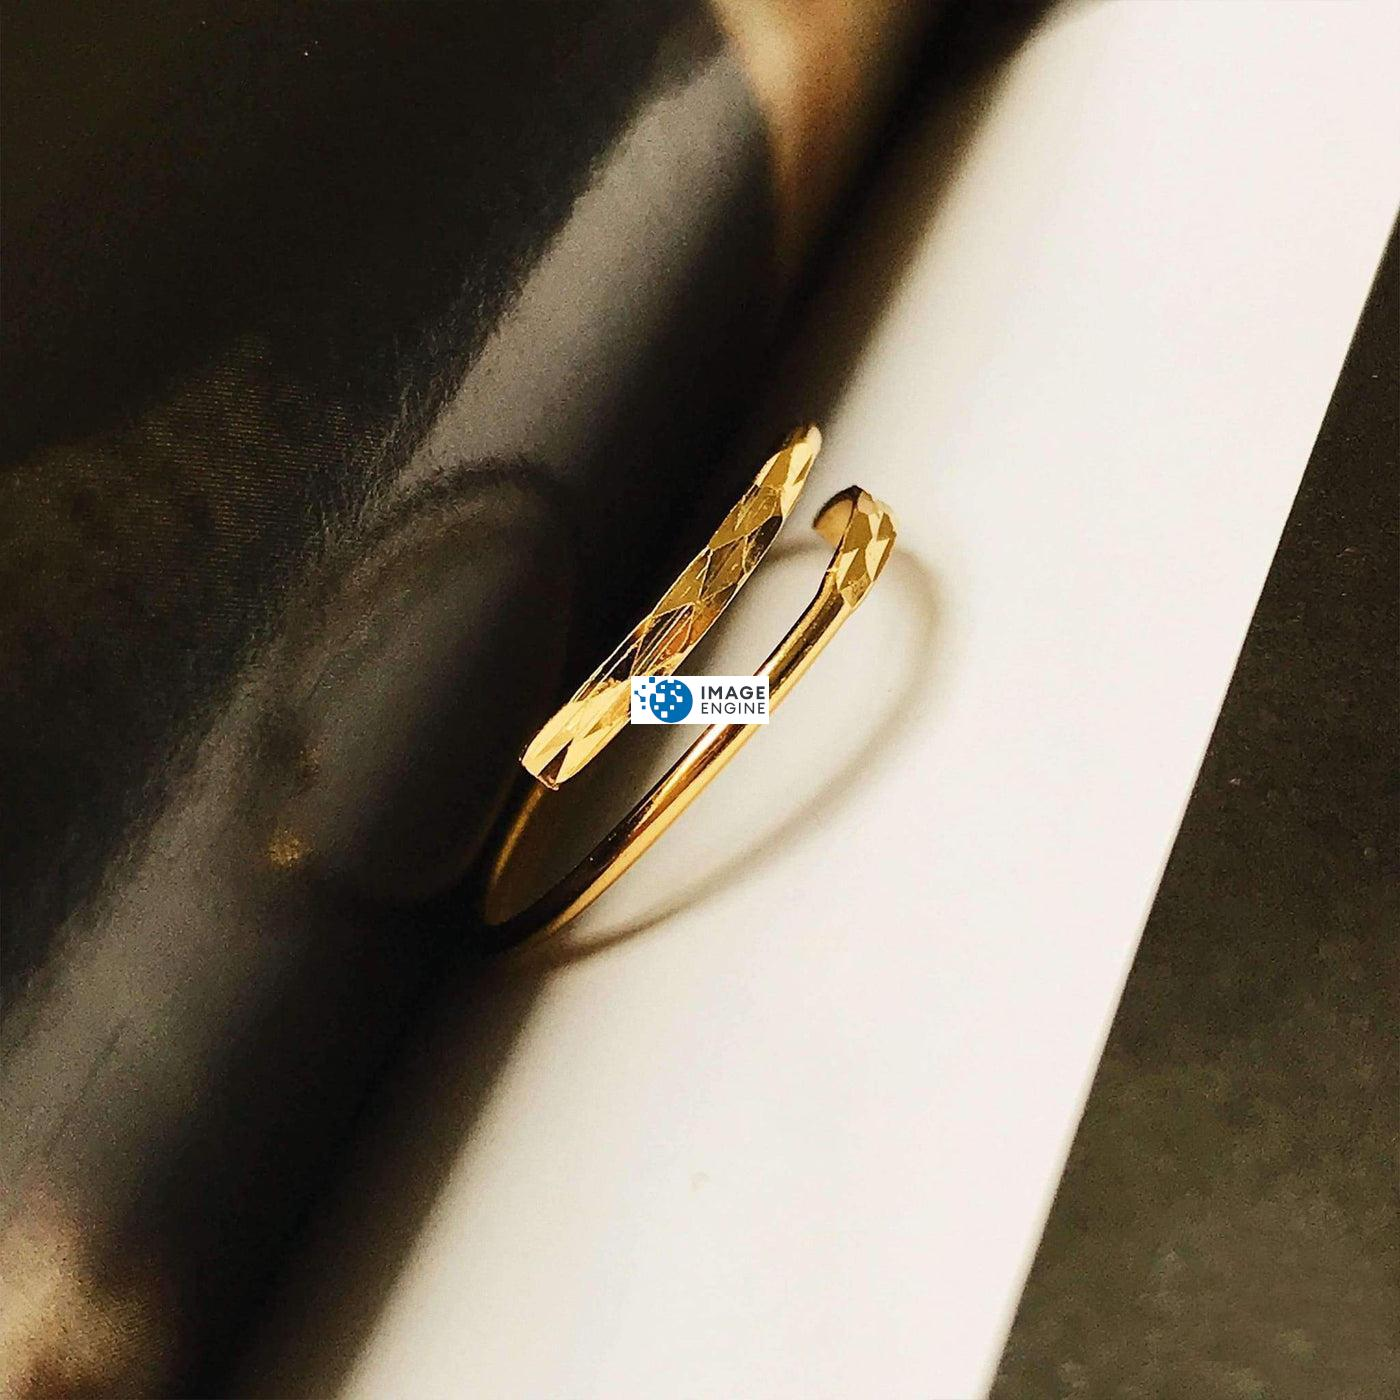 Minimalist Thumb Ring - In Between Pages Higher Side Angle - 18K Yellow Gold Vermeil